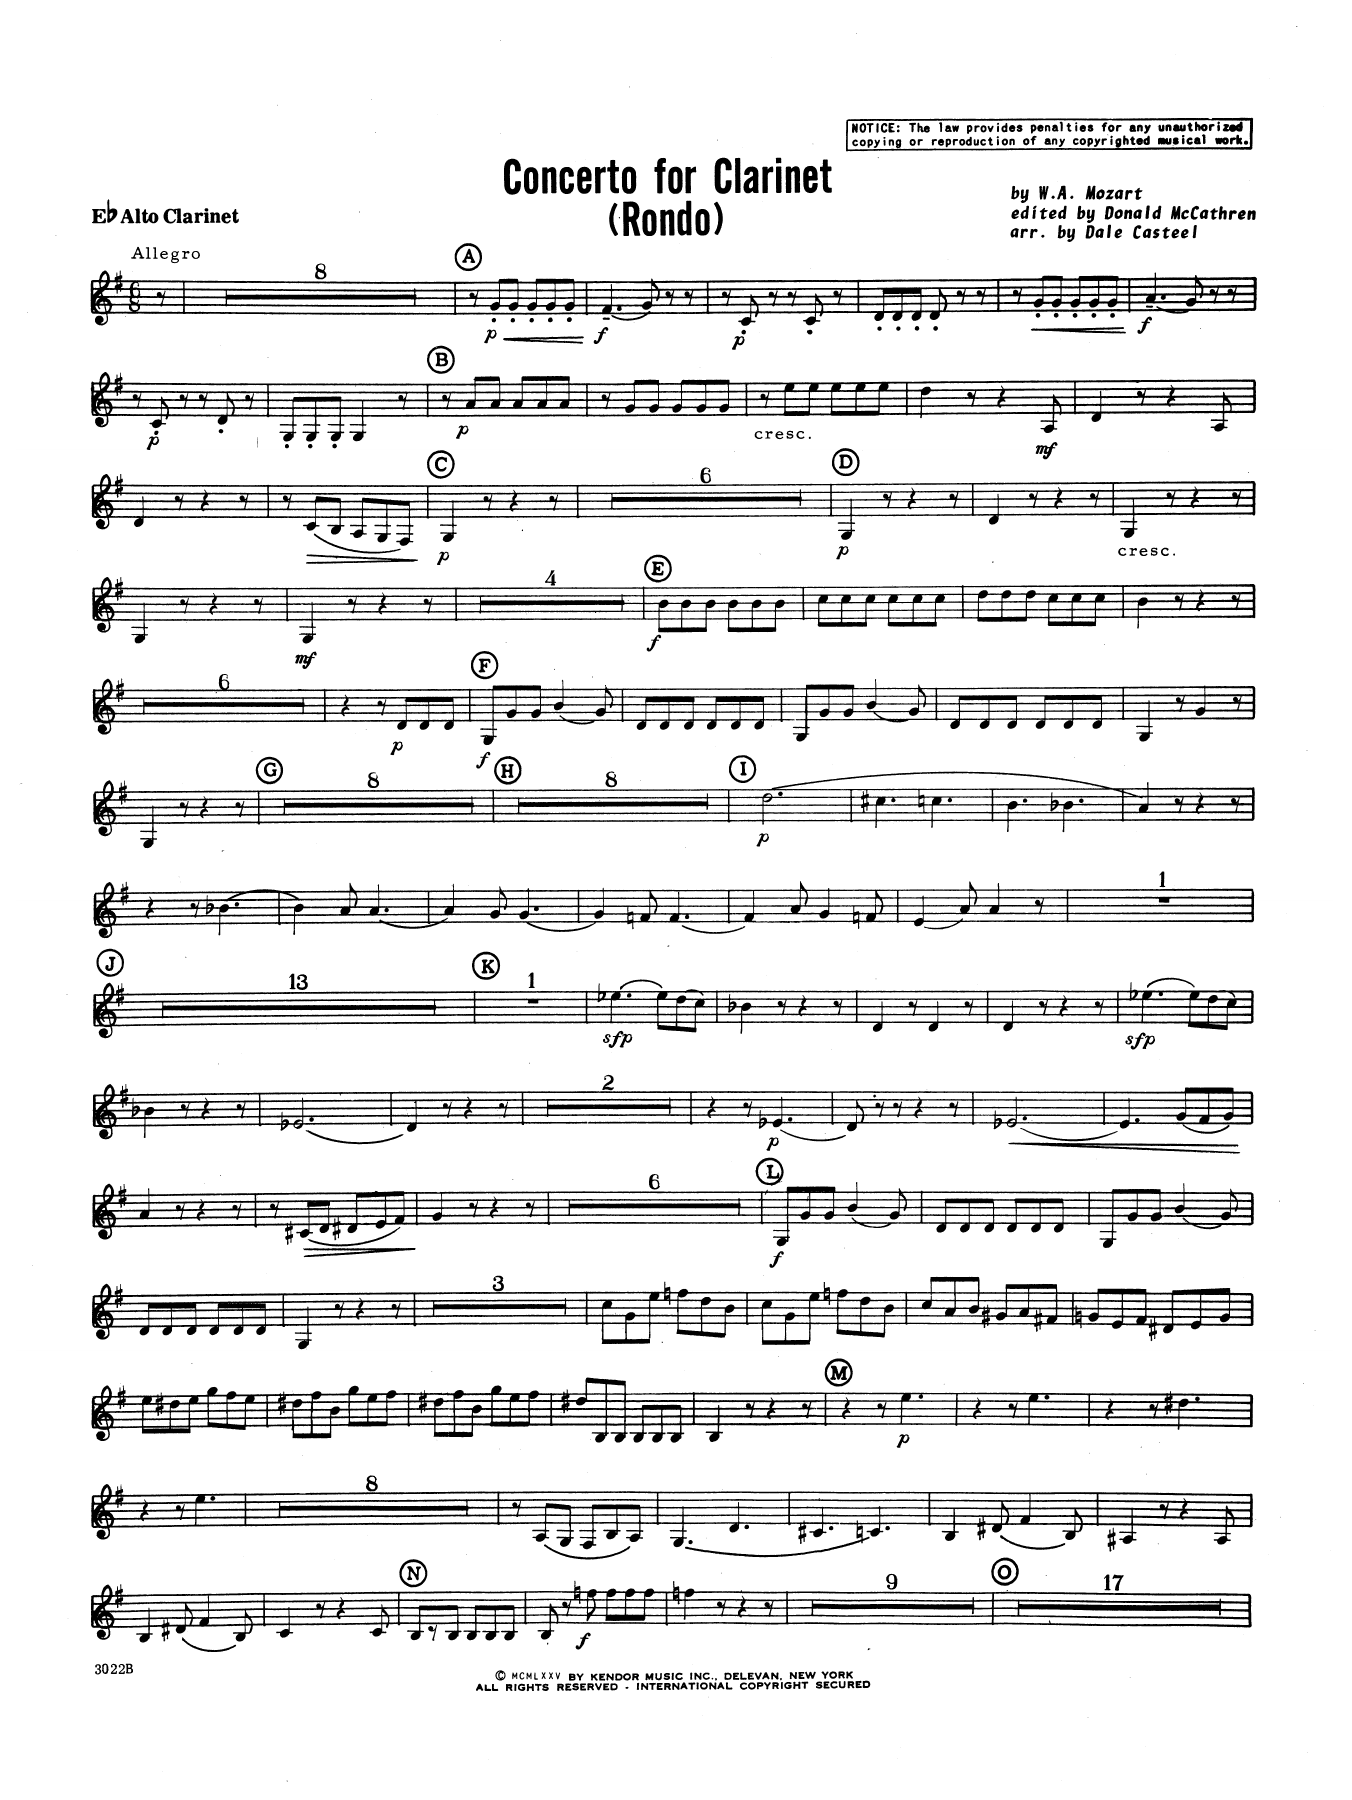 Donald McCathren and Dale Casteel Concerto For Clarinet - Rondo (3rd Movement) - K.622 - Eb Alto Clarinet sheet music preview music notes and score for Concert Band including 2 page(s)